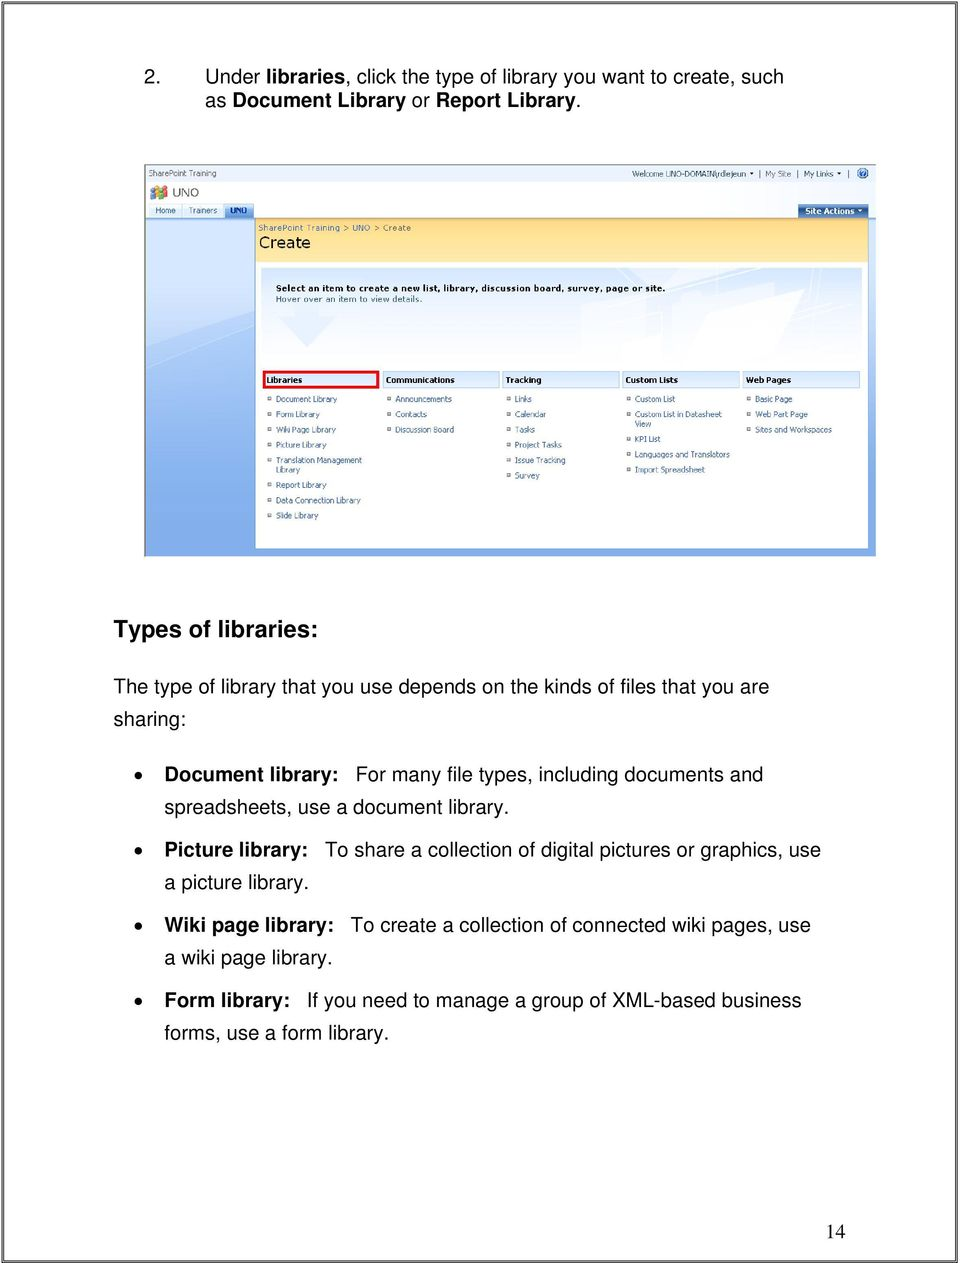 including documents and spreadsheets, use a document library.